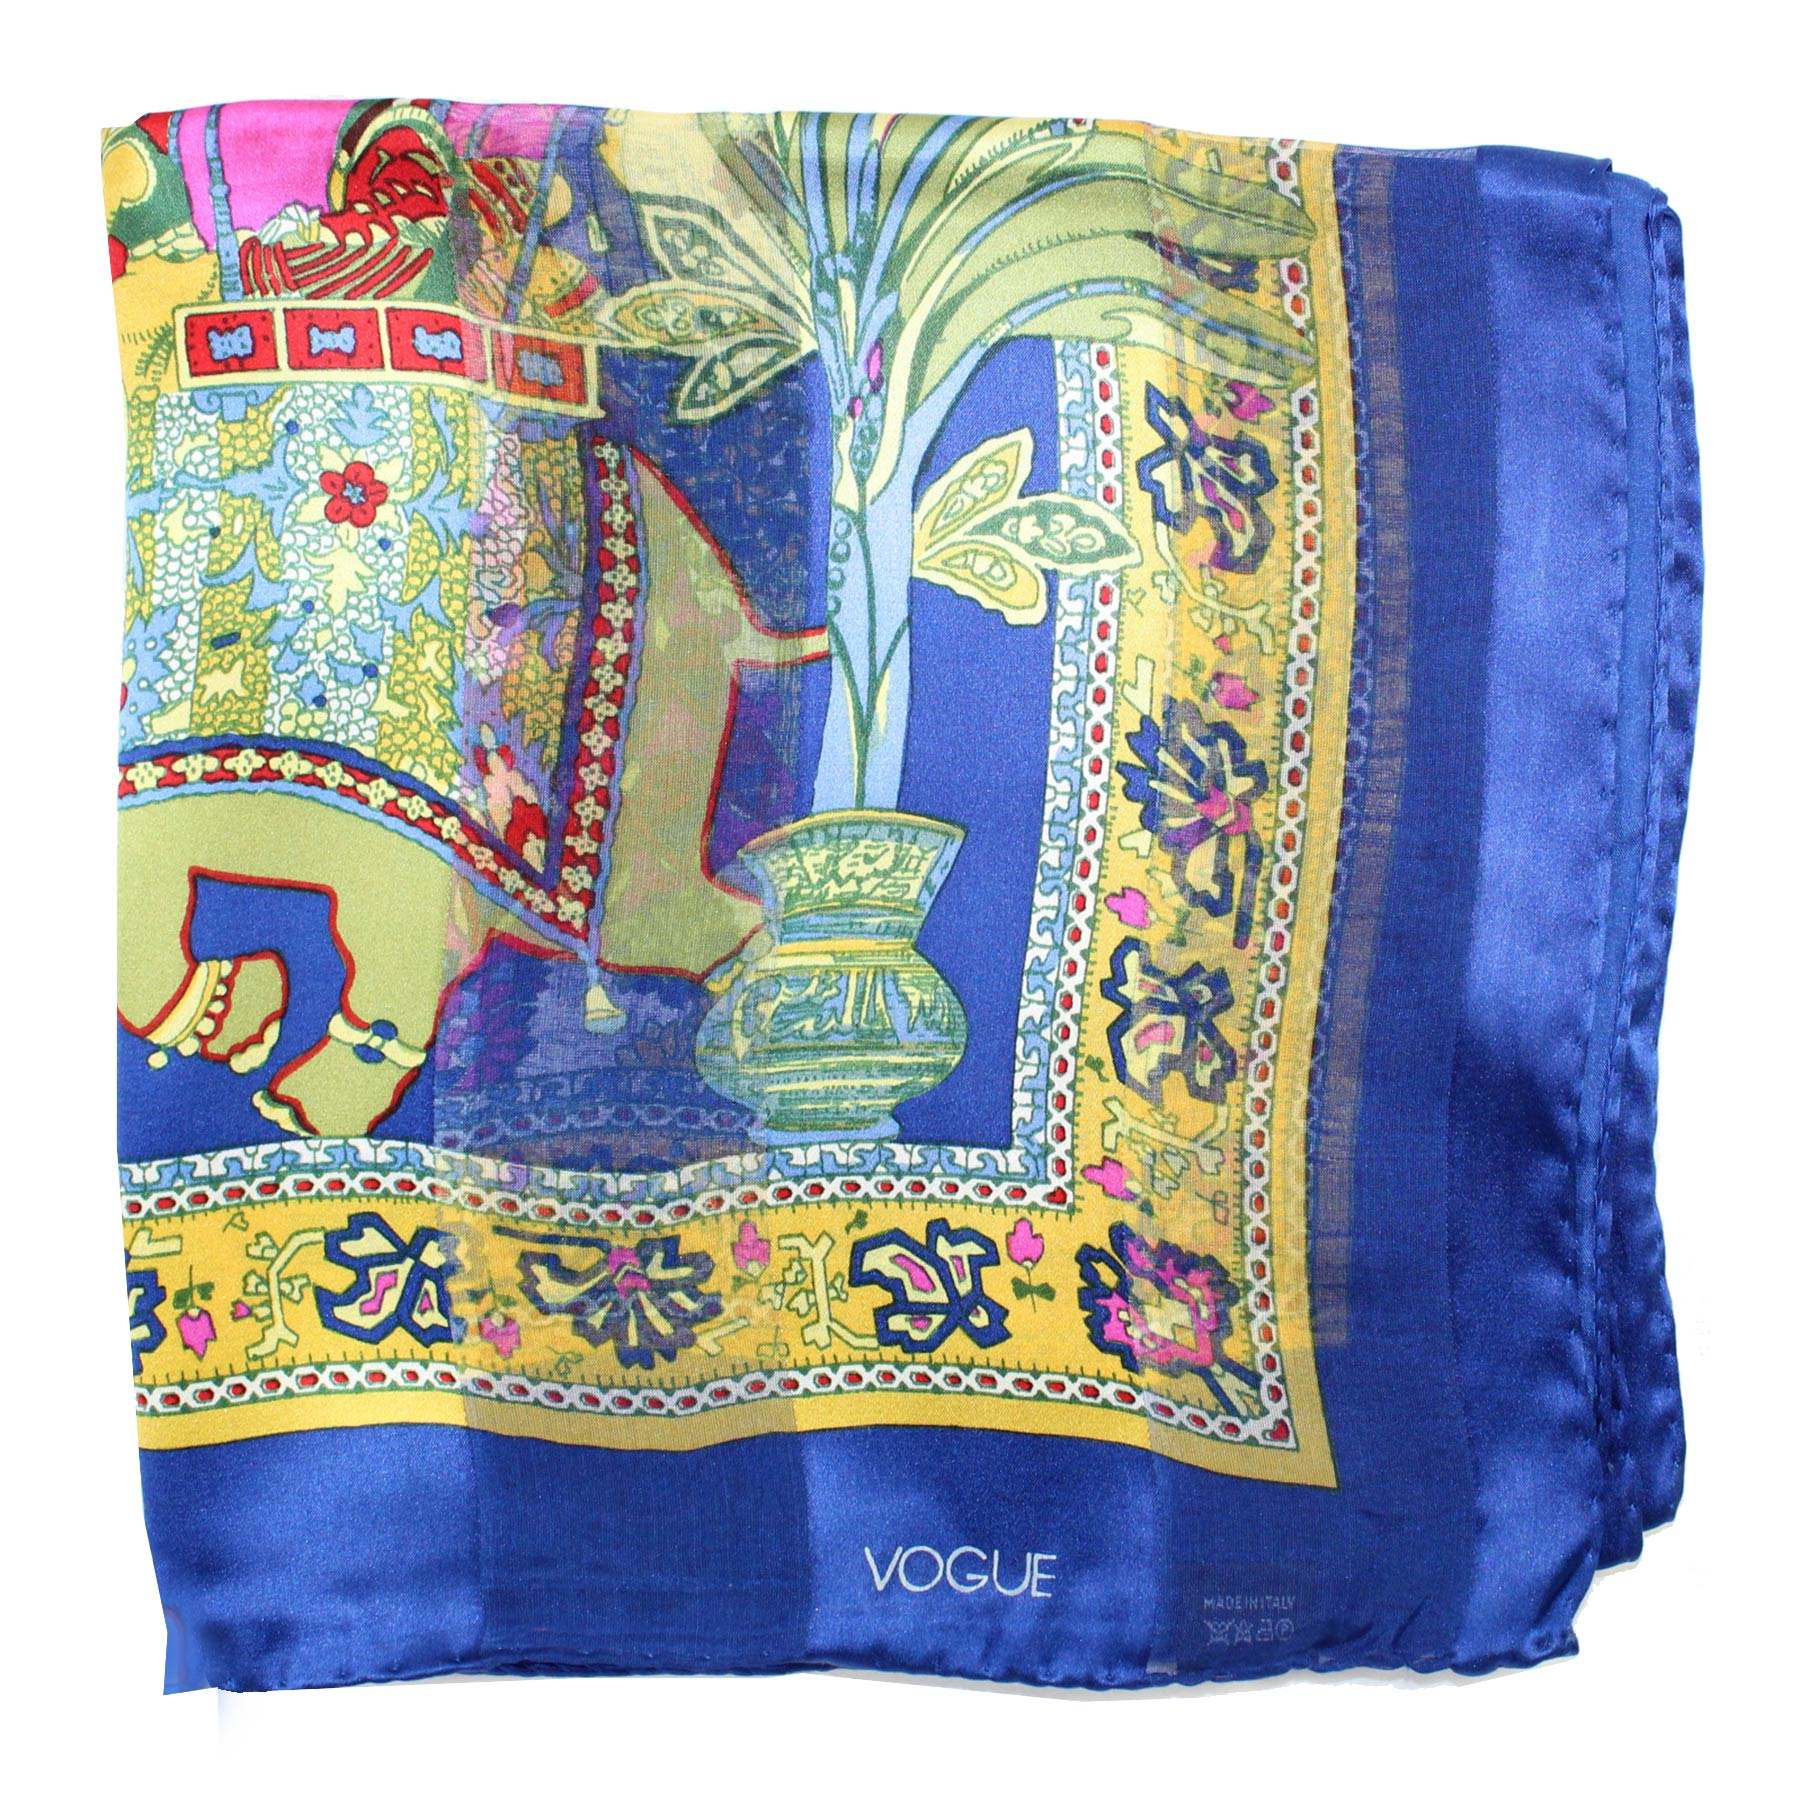 Vogue Scarf Royal Blue Mustard Pink - Large Silk Square Scarf SALE